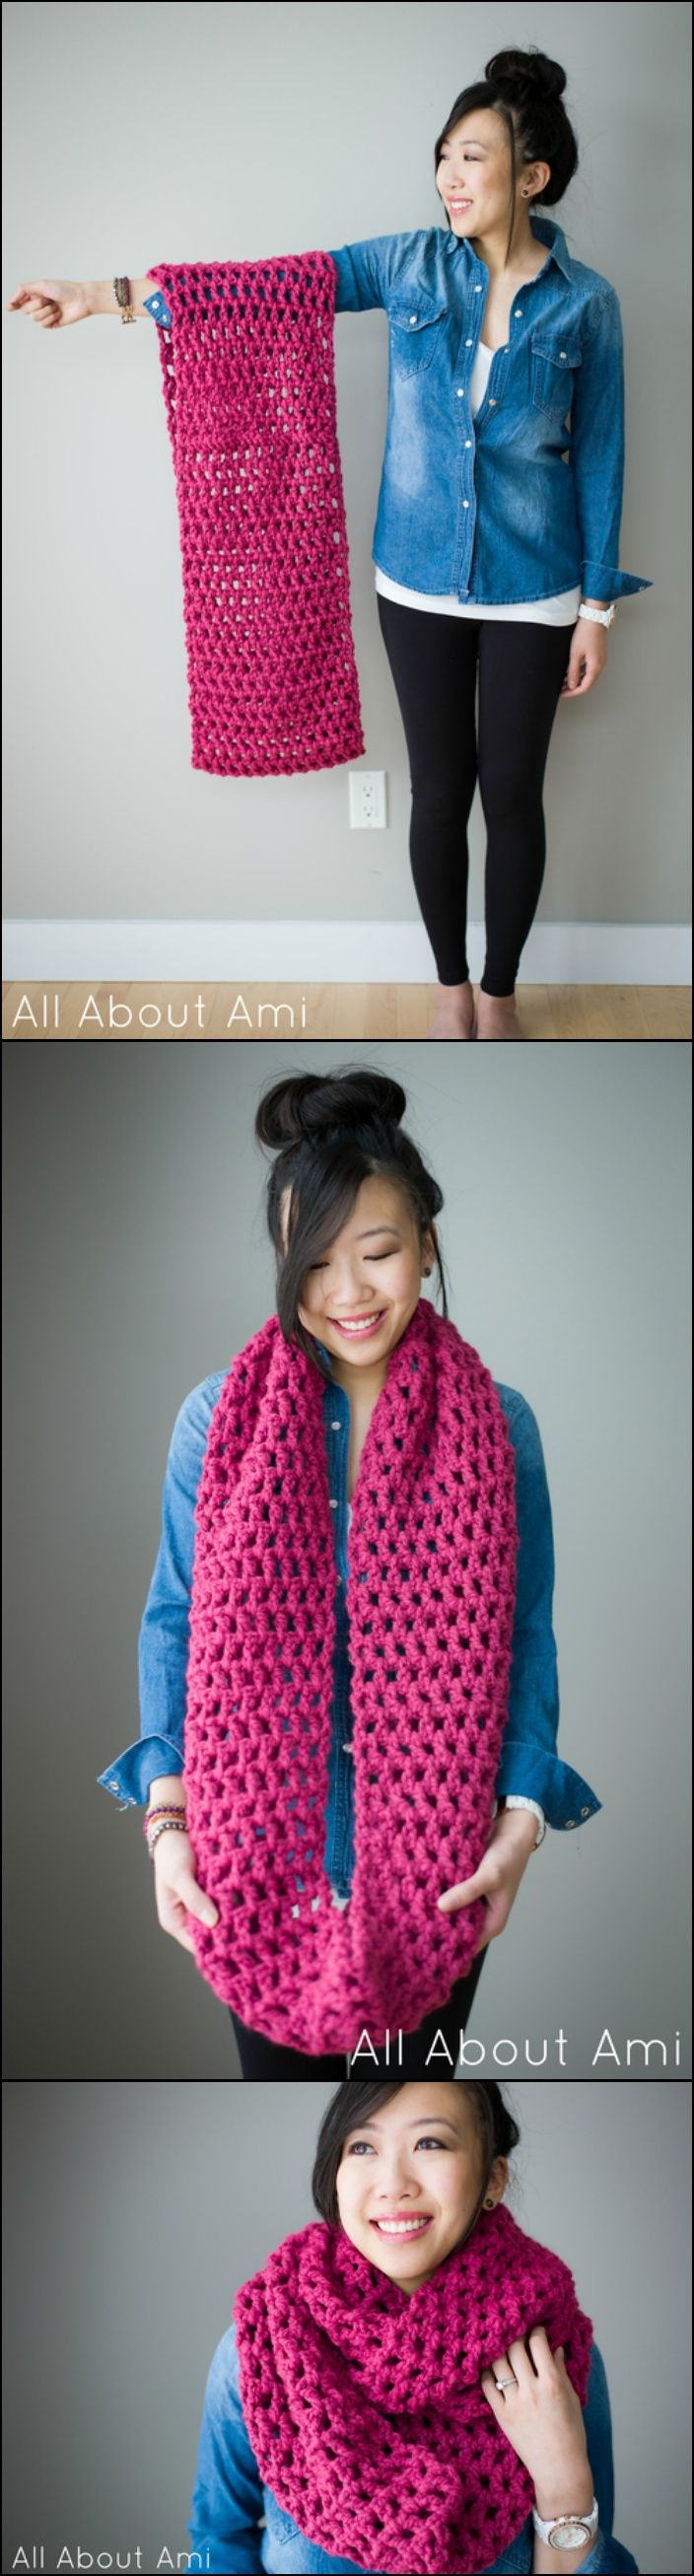 20 Amazing Free Crochet Patterns That Any Beginner Can Make | Kragen ...